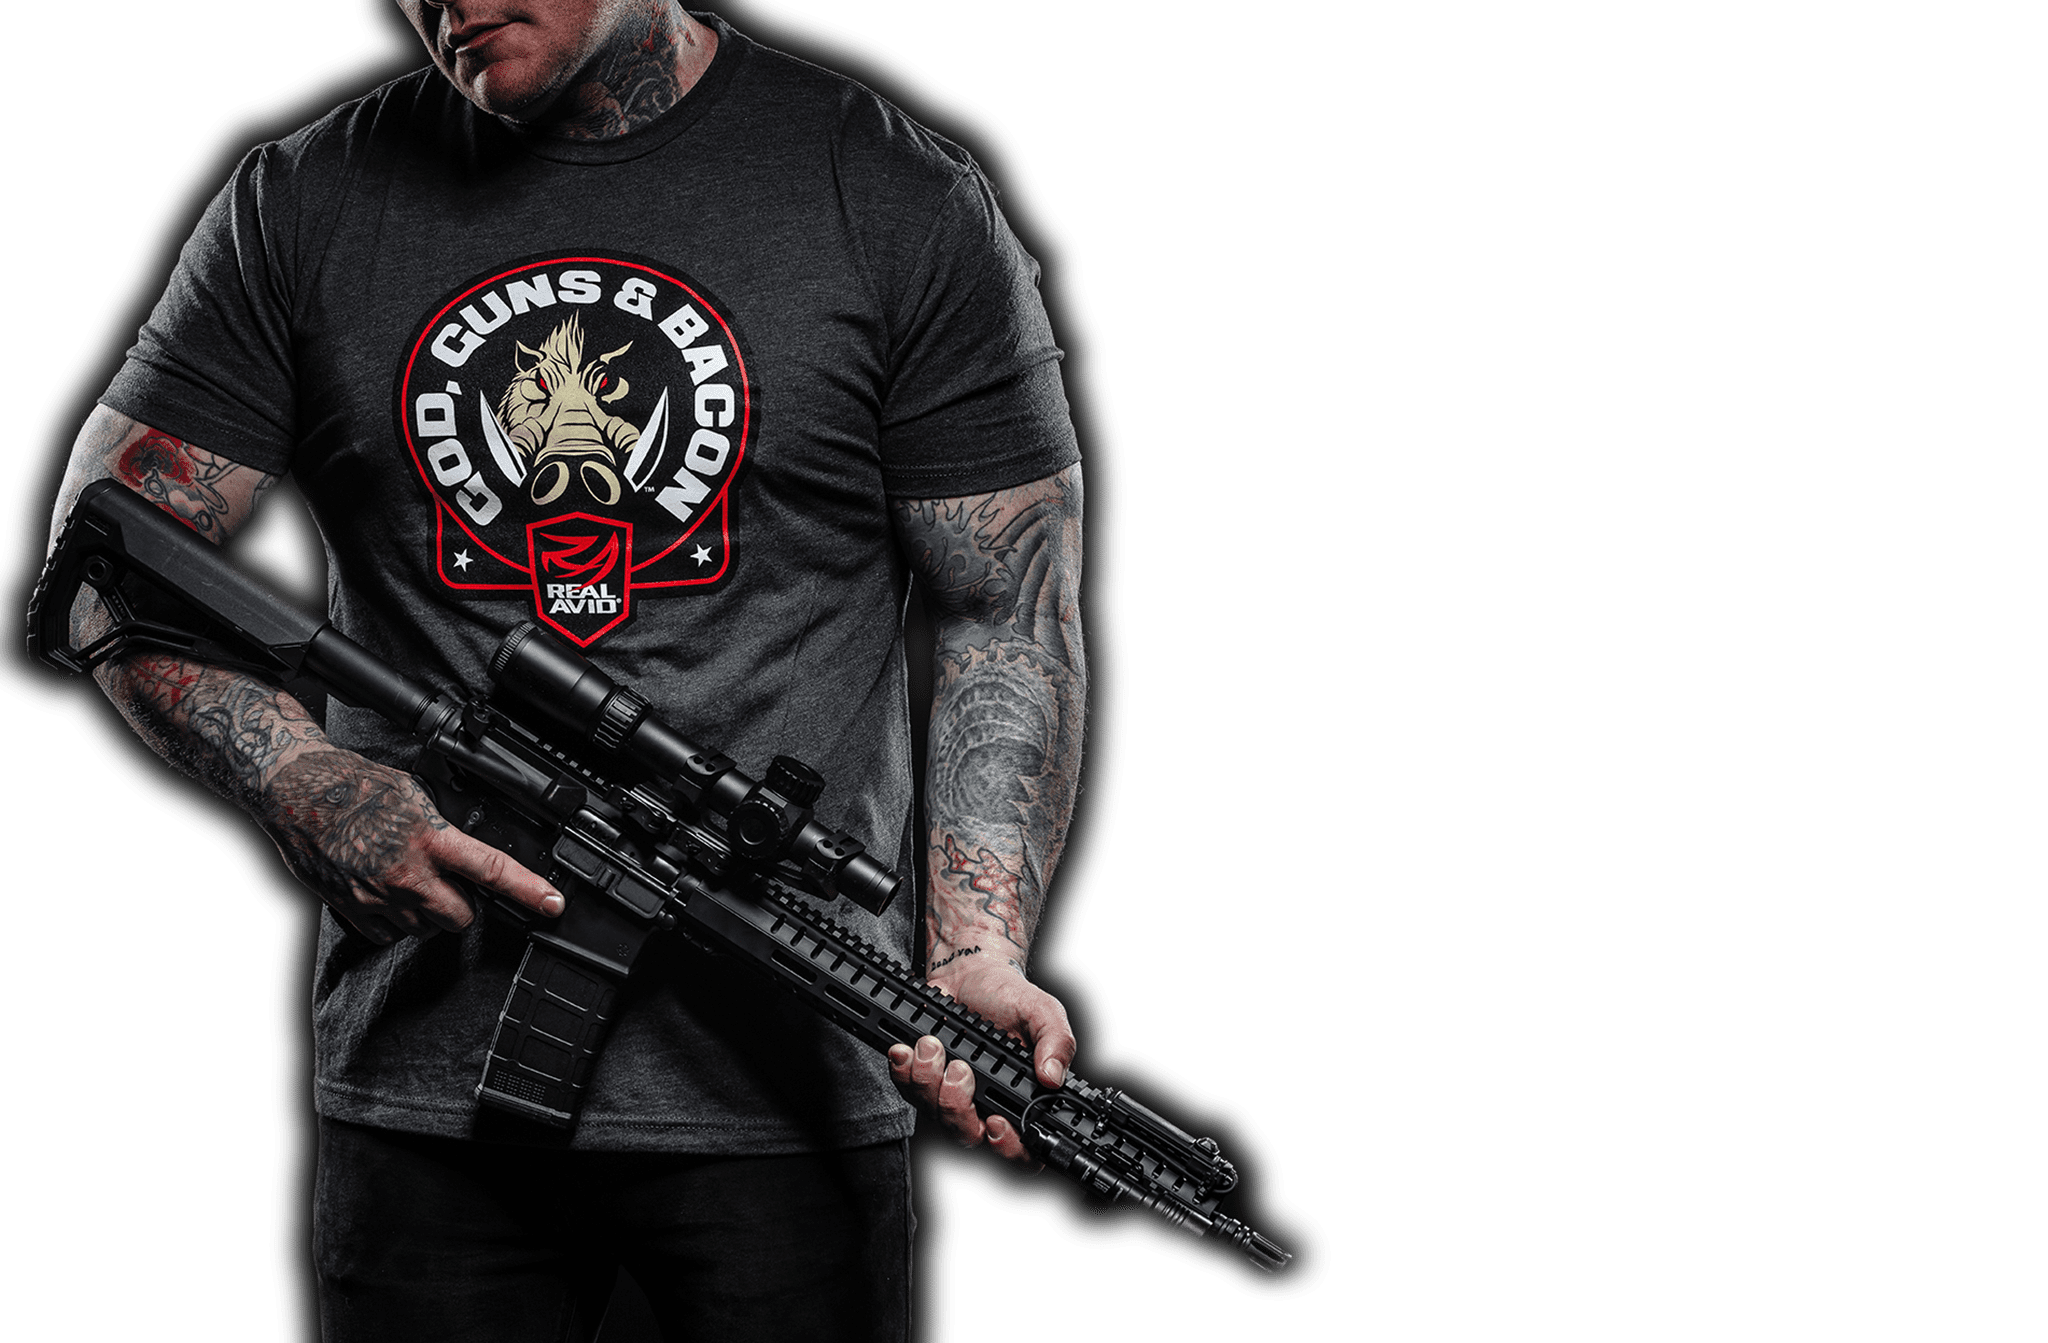 Man wearing God Guns and Bacon T-Shirt Holding AR15